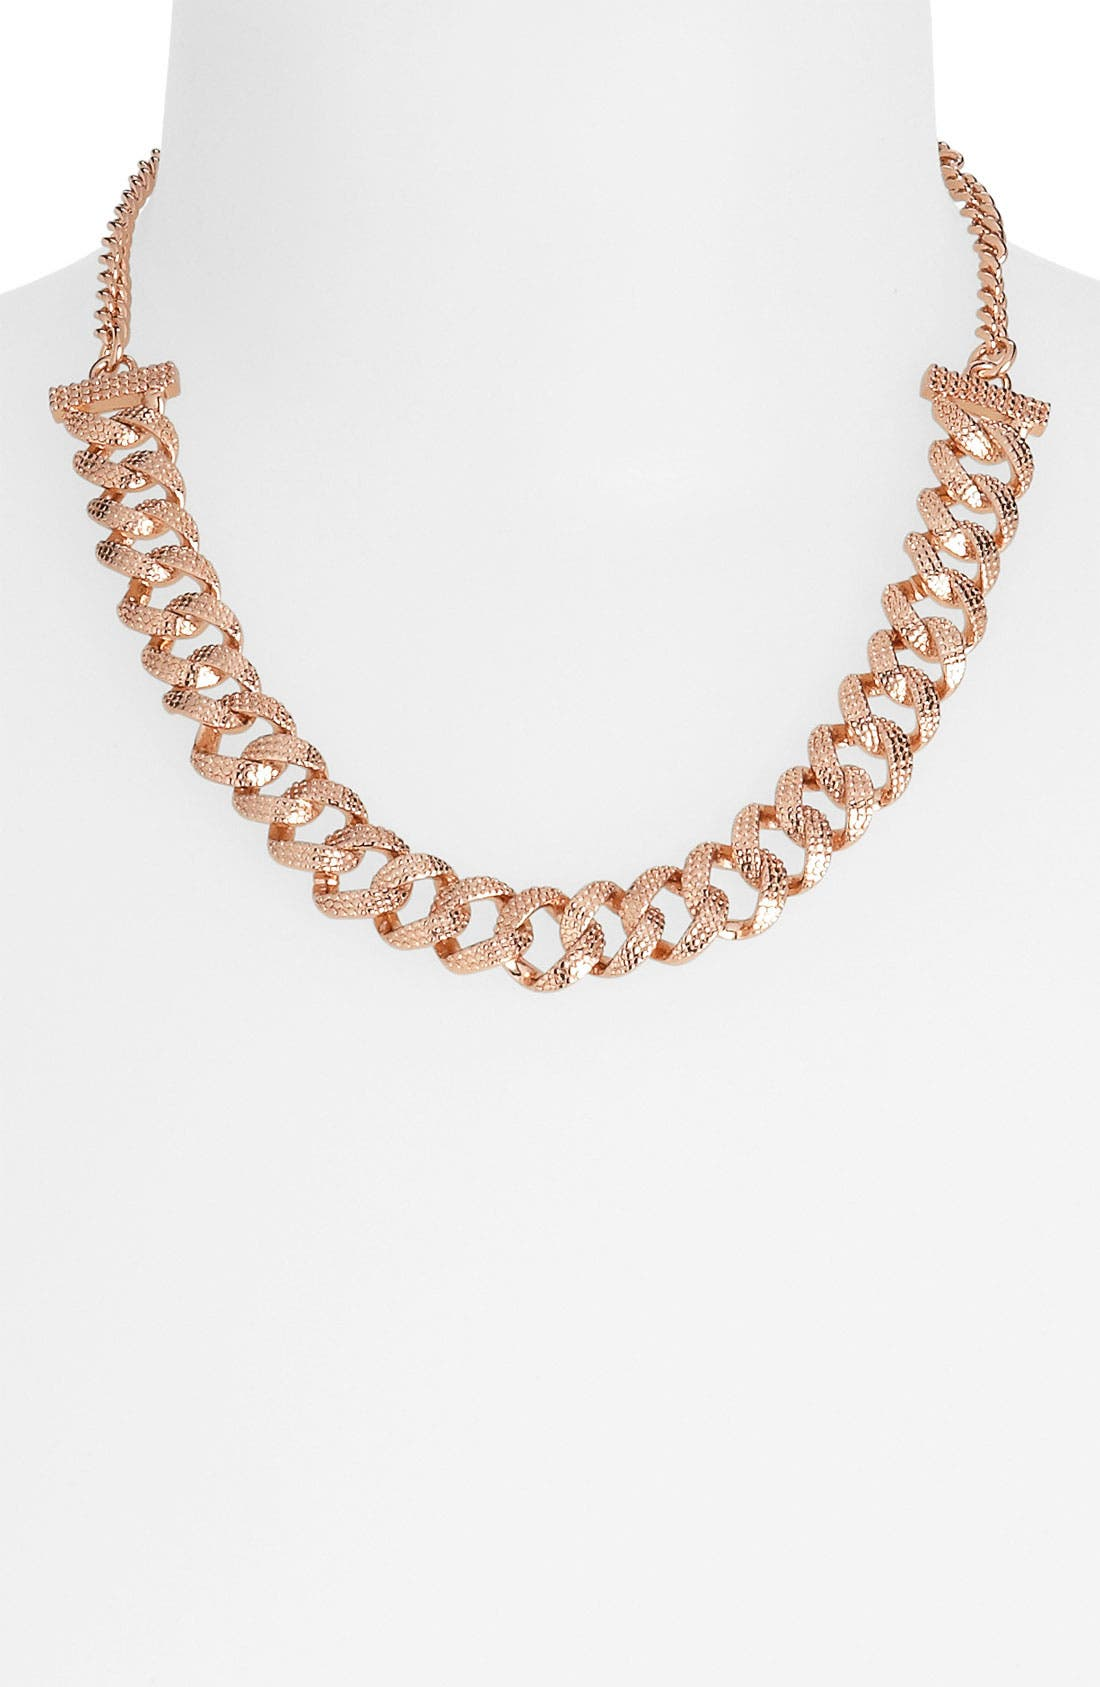 Main Image - MARC BY MARC JACOBS 'Lizard' Link Necklace